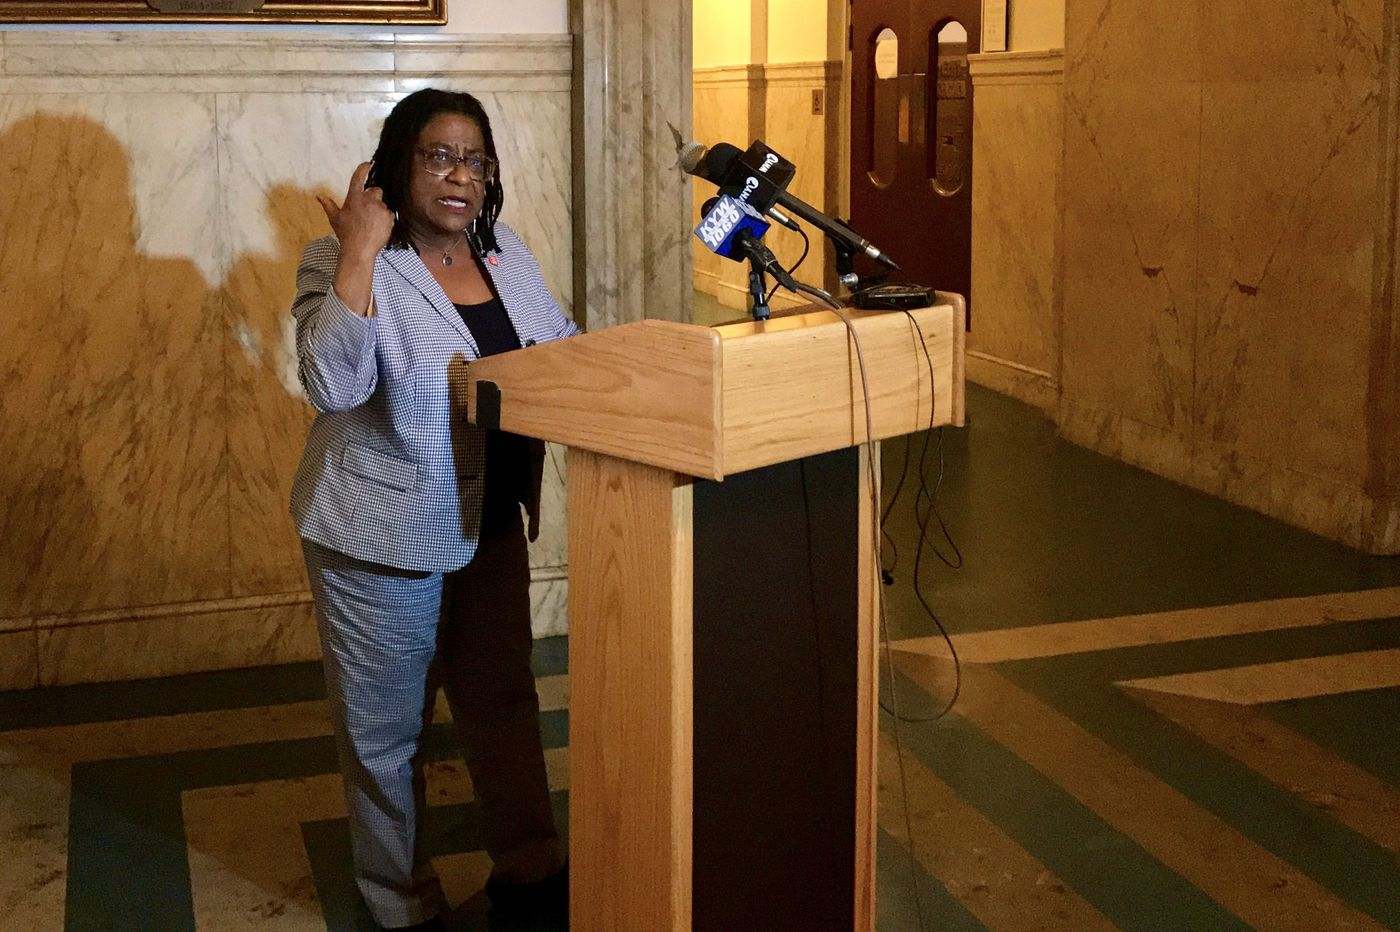 Philadelphia's low wages hurt single mothers most of all | Opinion